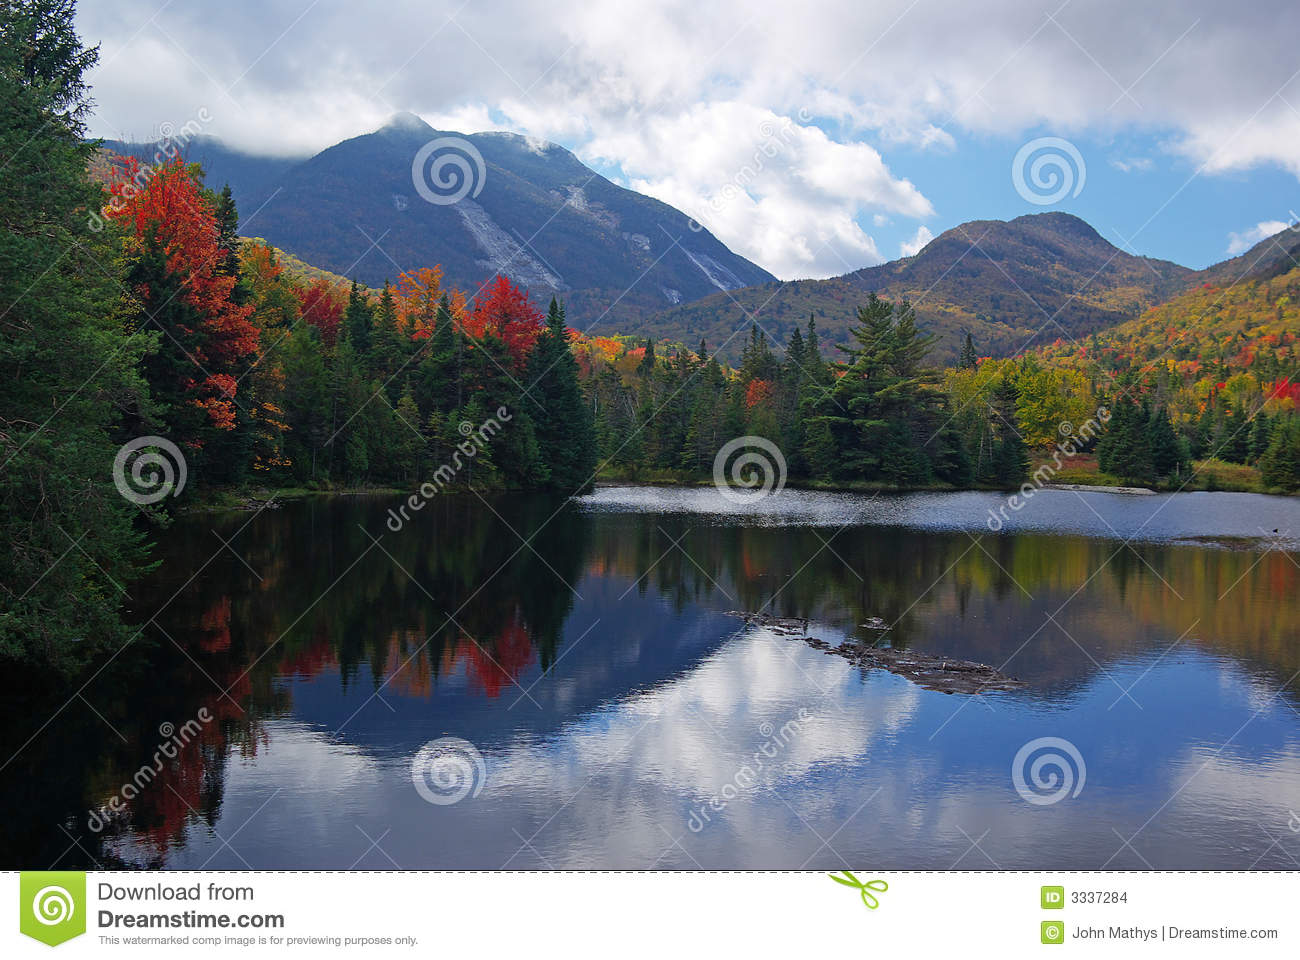 Fall Colors and Mountains